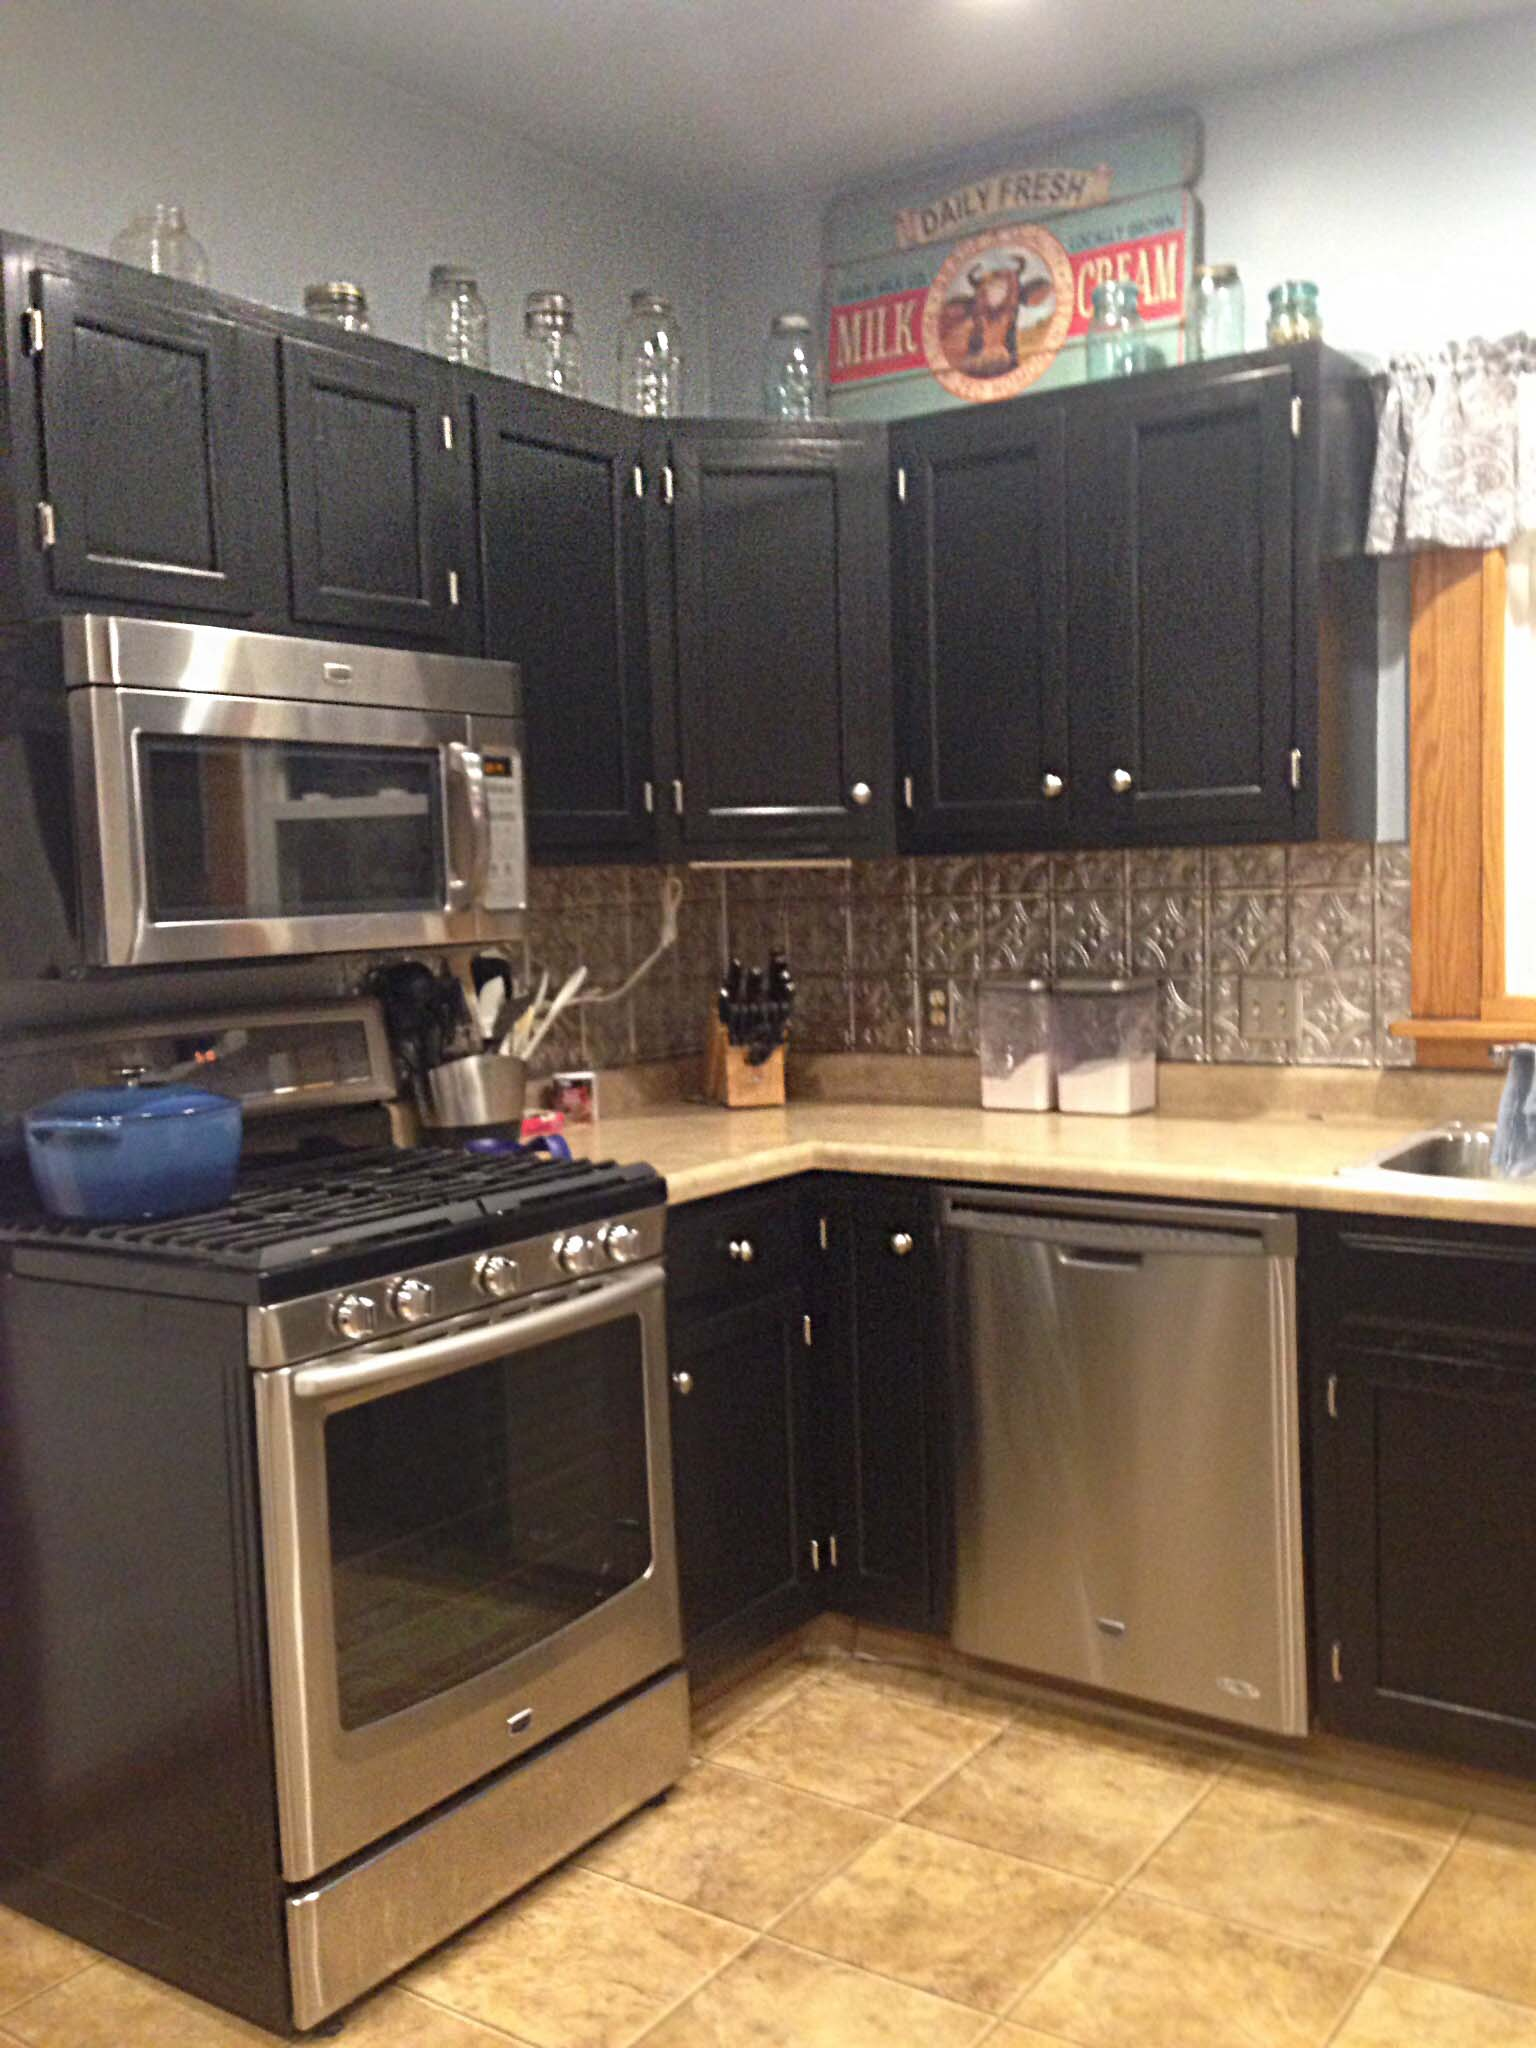 Kitchen Cabinets in Black Gel Stain | General Finishes Design Center